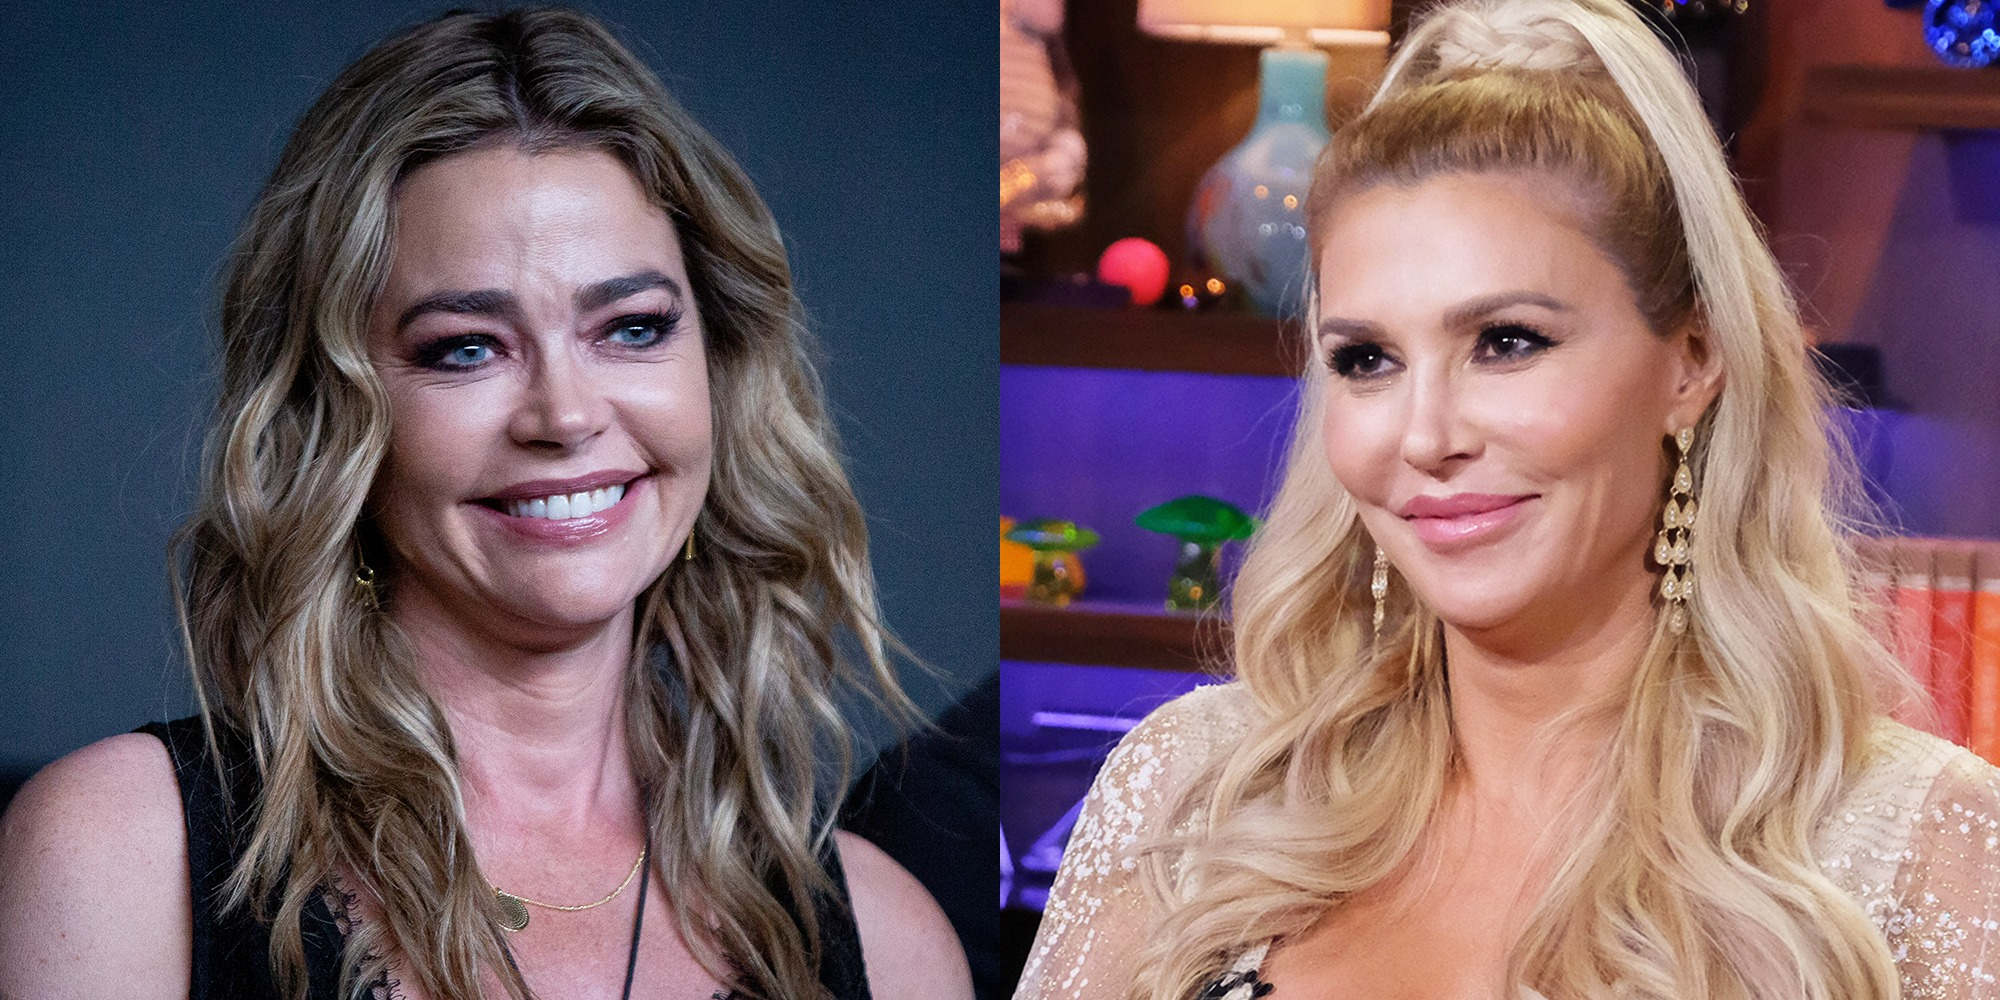 brandi-glanville-opens-up-about-the-reason-she-wasnt-on-the-rhobh-reunion-episode-amid-affair-drama-with-co-star-denise-richards